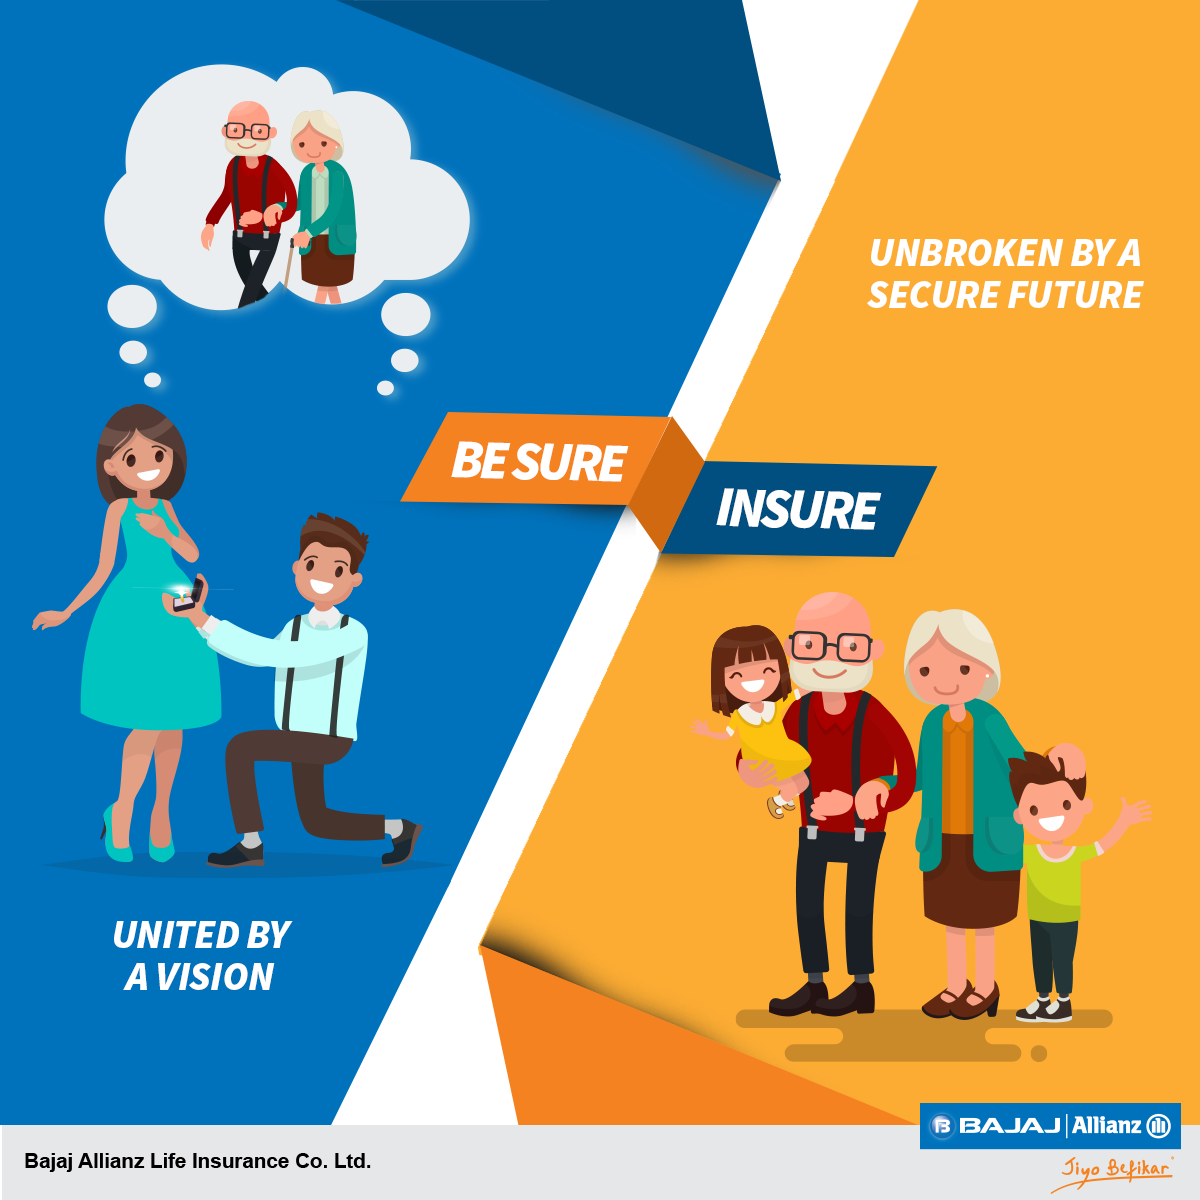 Plan Your Lives Together Secure Your Future With Life Insurance